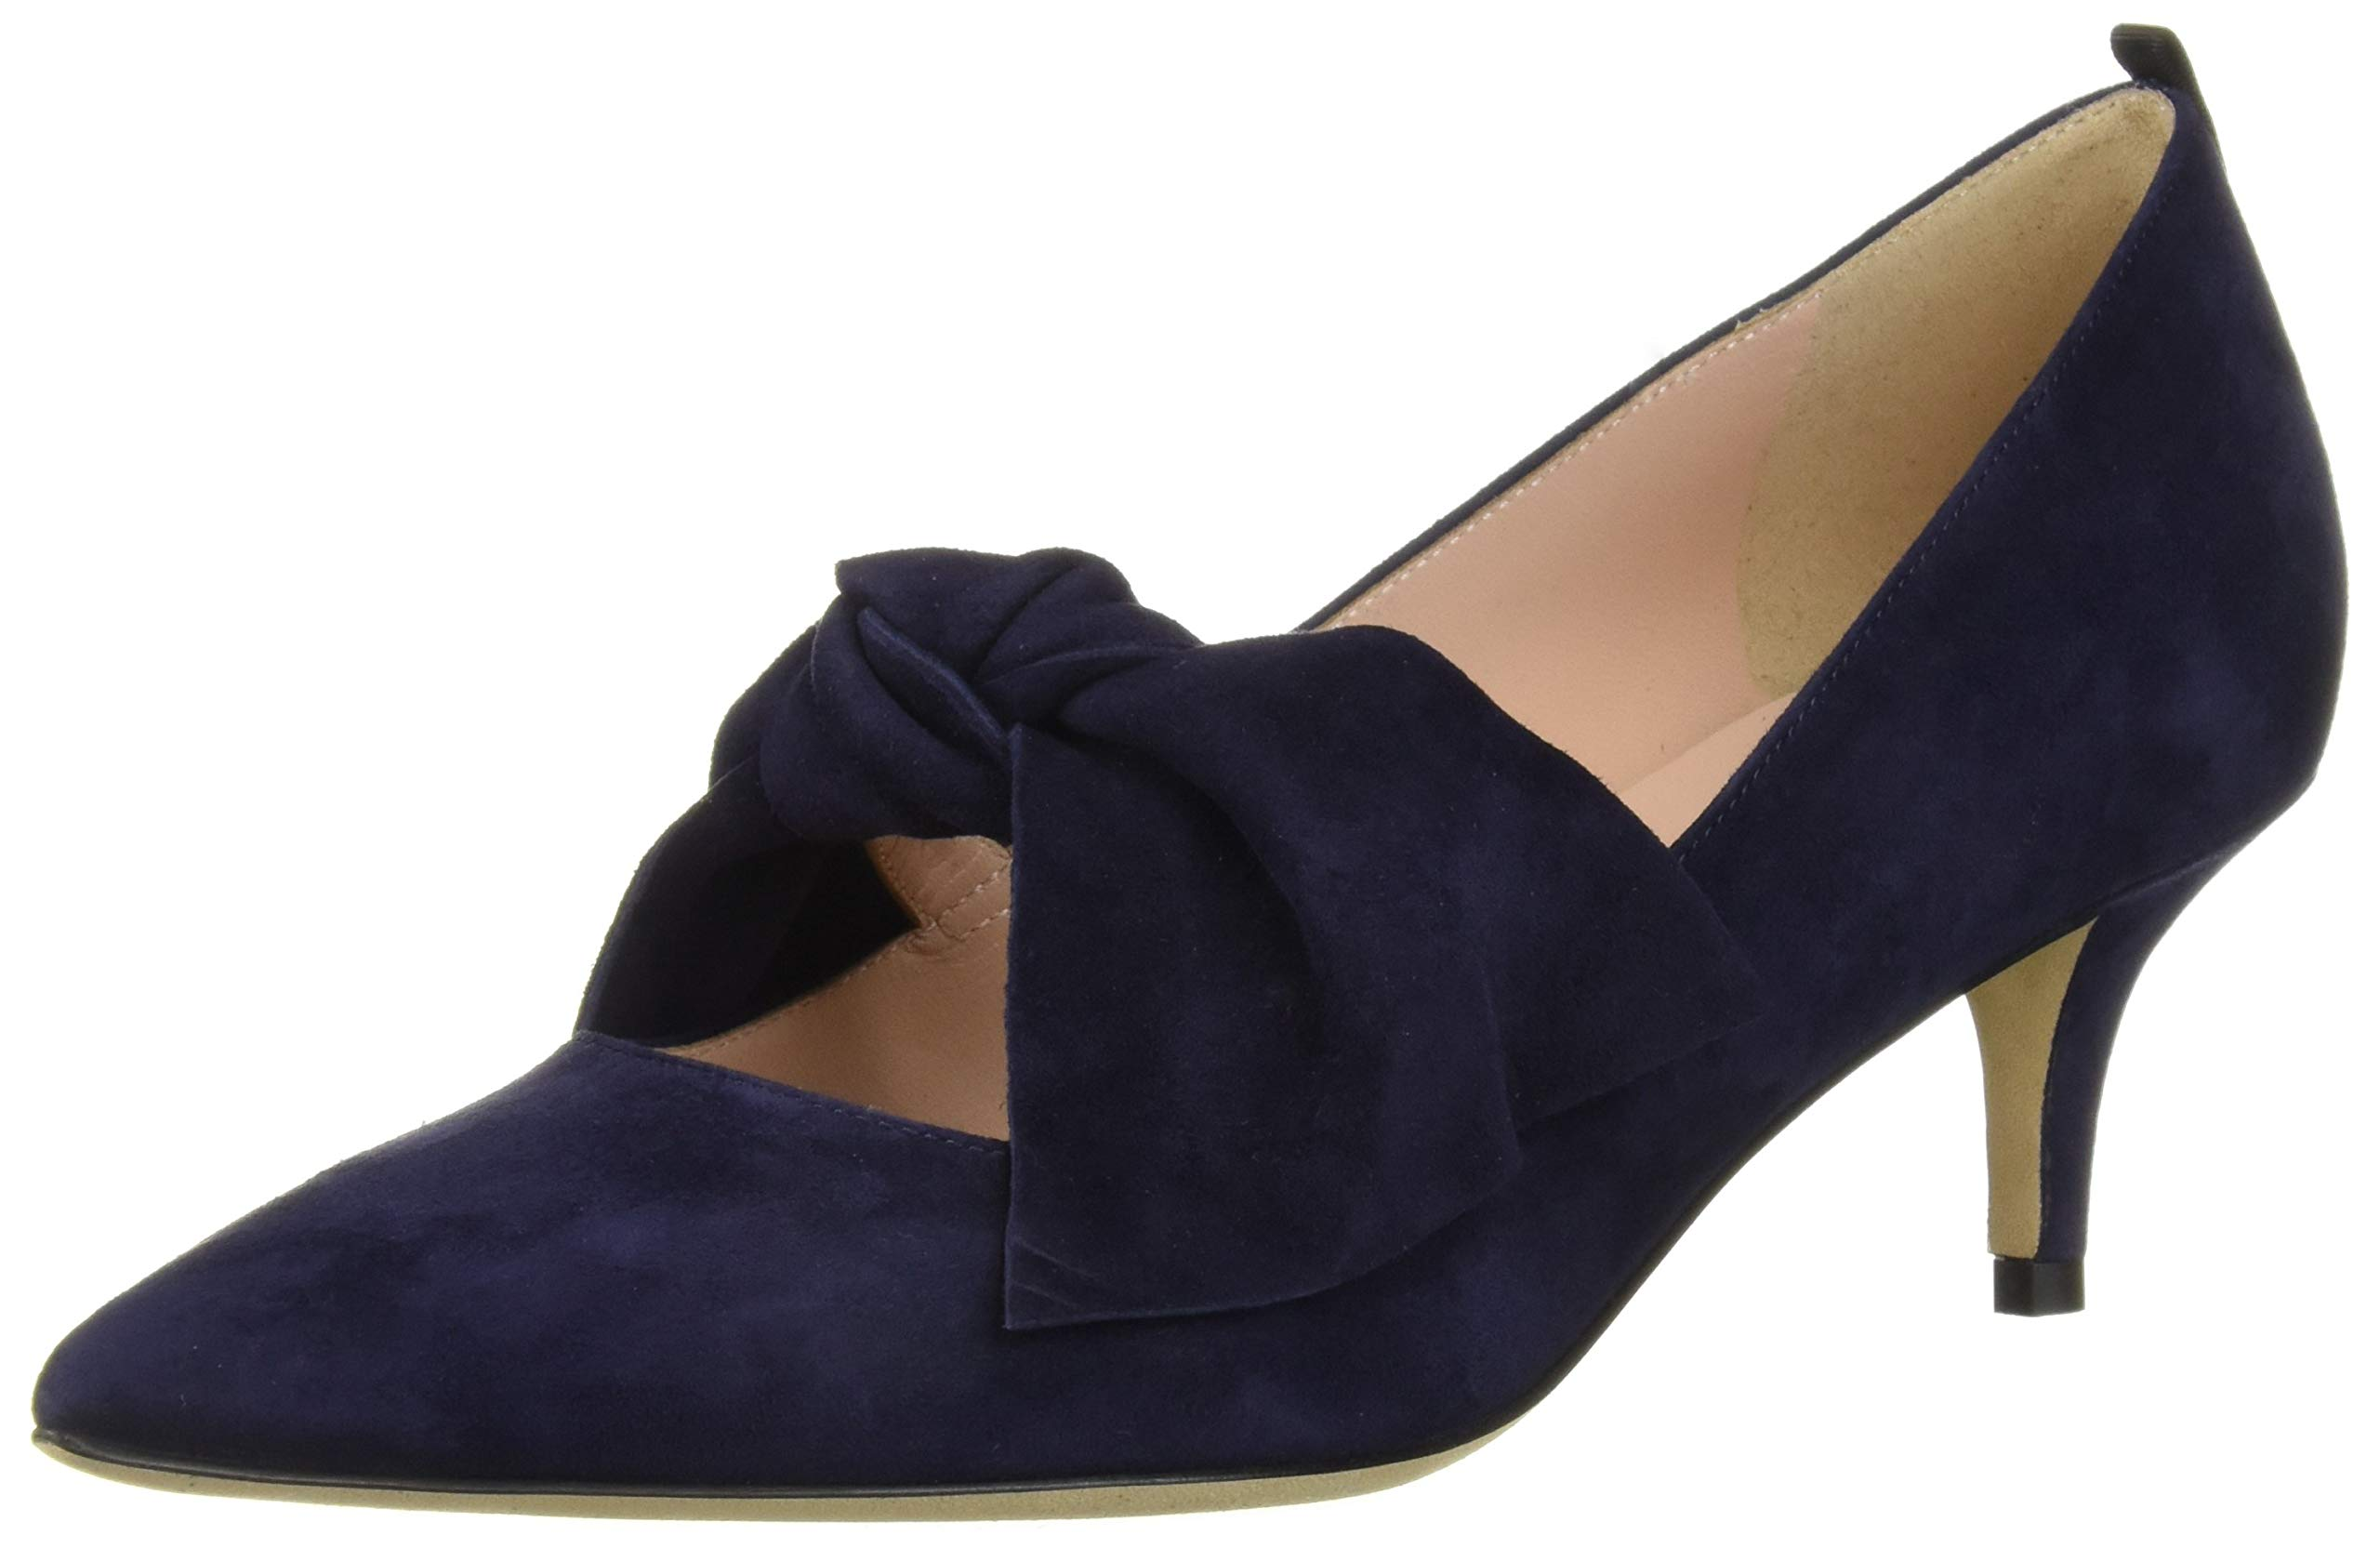 SJP by Sarah Jessica Parker Women's Roux 50 Pointed Toe Bow Strap Pump, Abyss Navy Sued, 39.5 B EU (9 US) by SJP by Sarah Jessica Parker